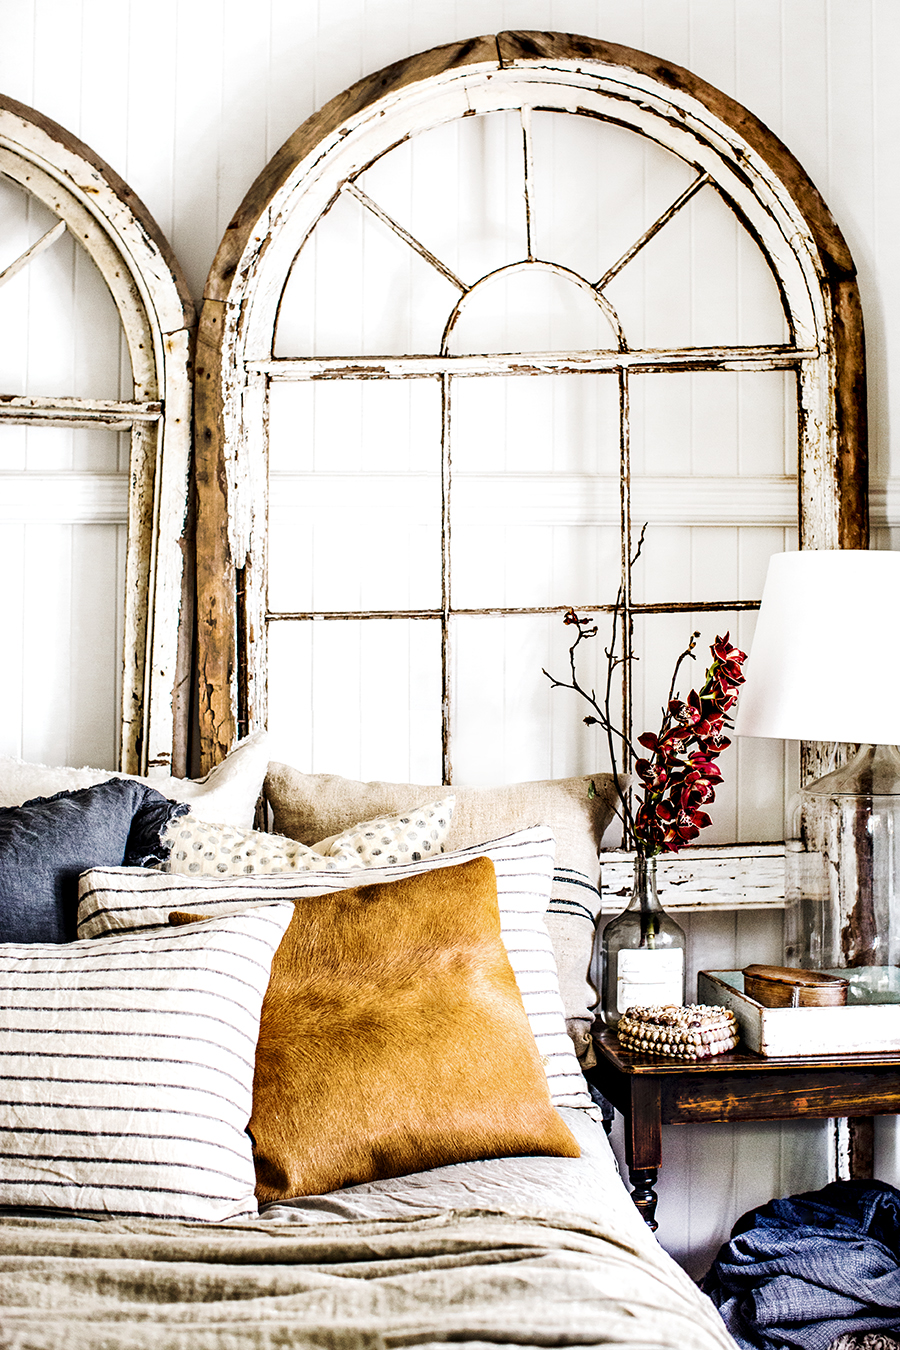 Rustic Bohemian Interior Design in a Bedroom by Kara Rosenlund layered with vintage finds and rustic beachy goodness. #vintagestyle #bedroom #rusticdecor #boho